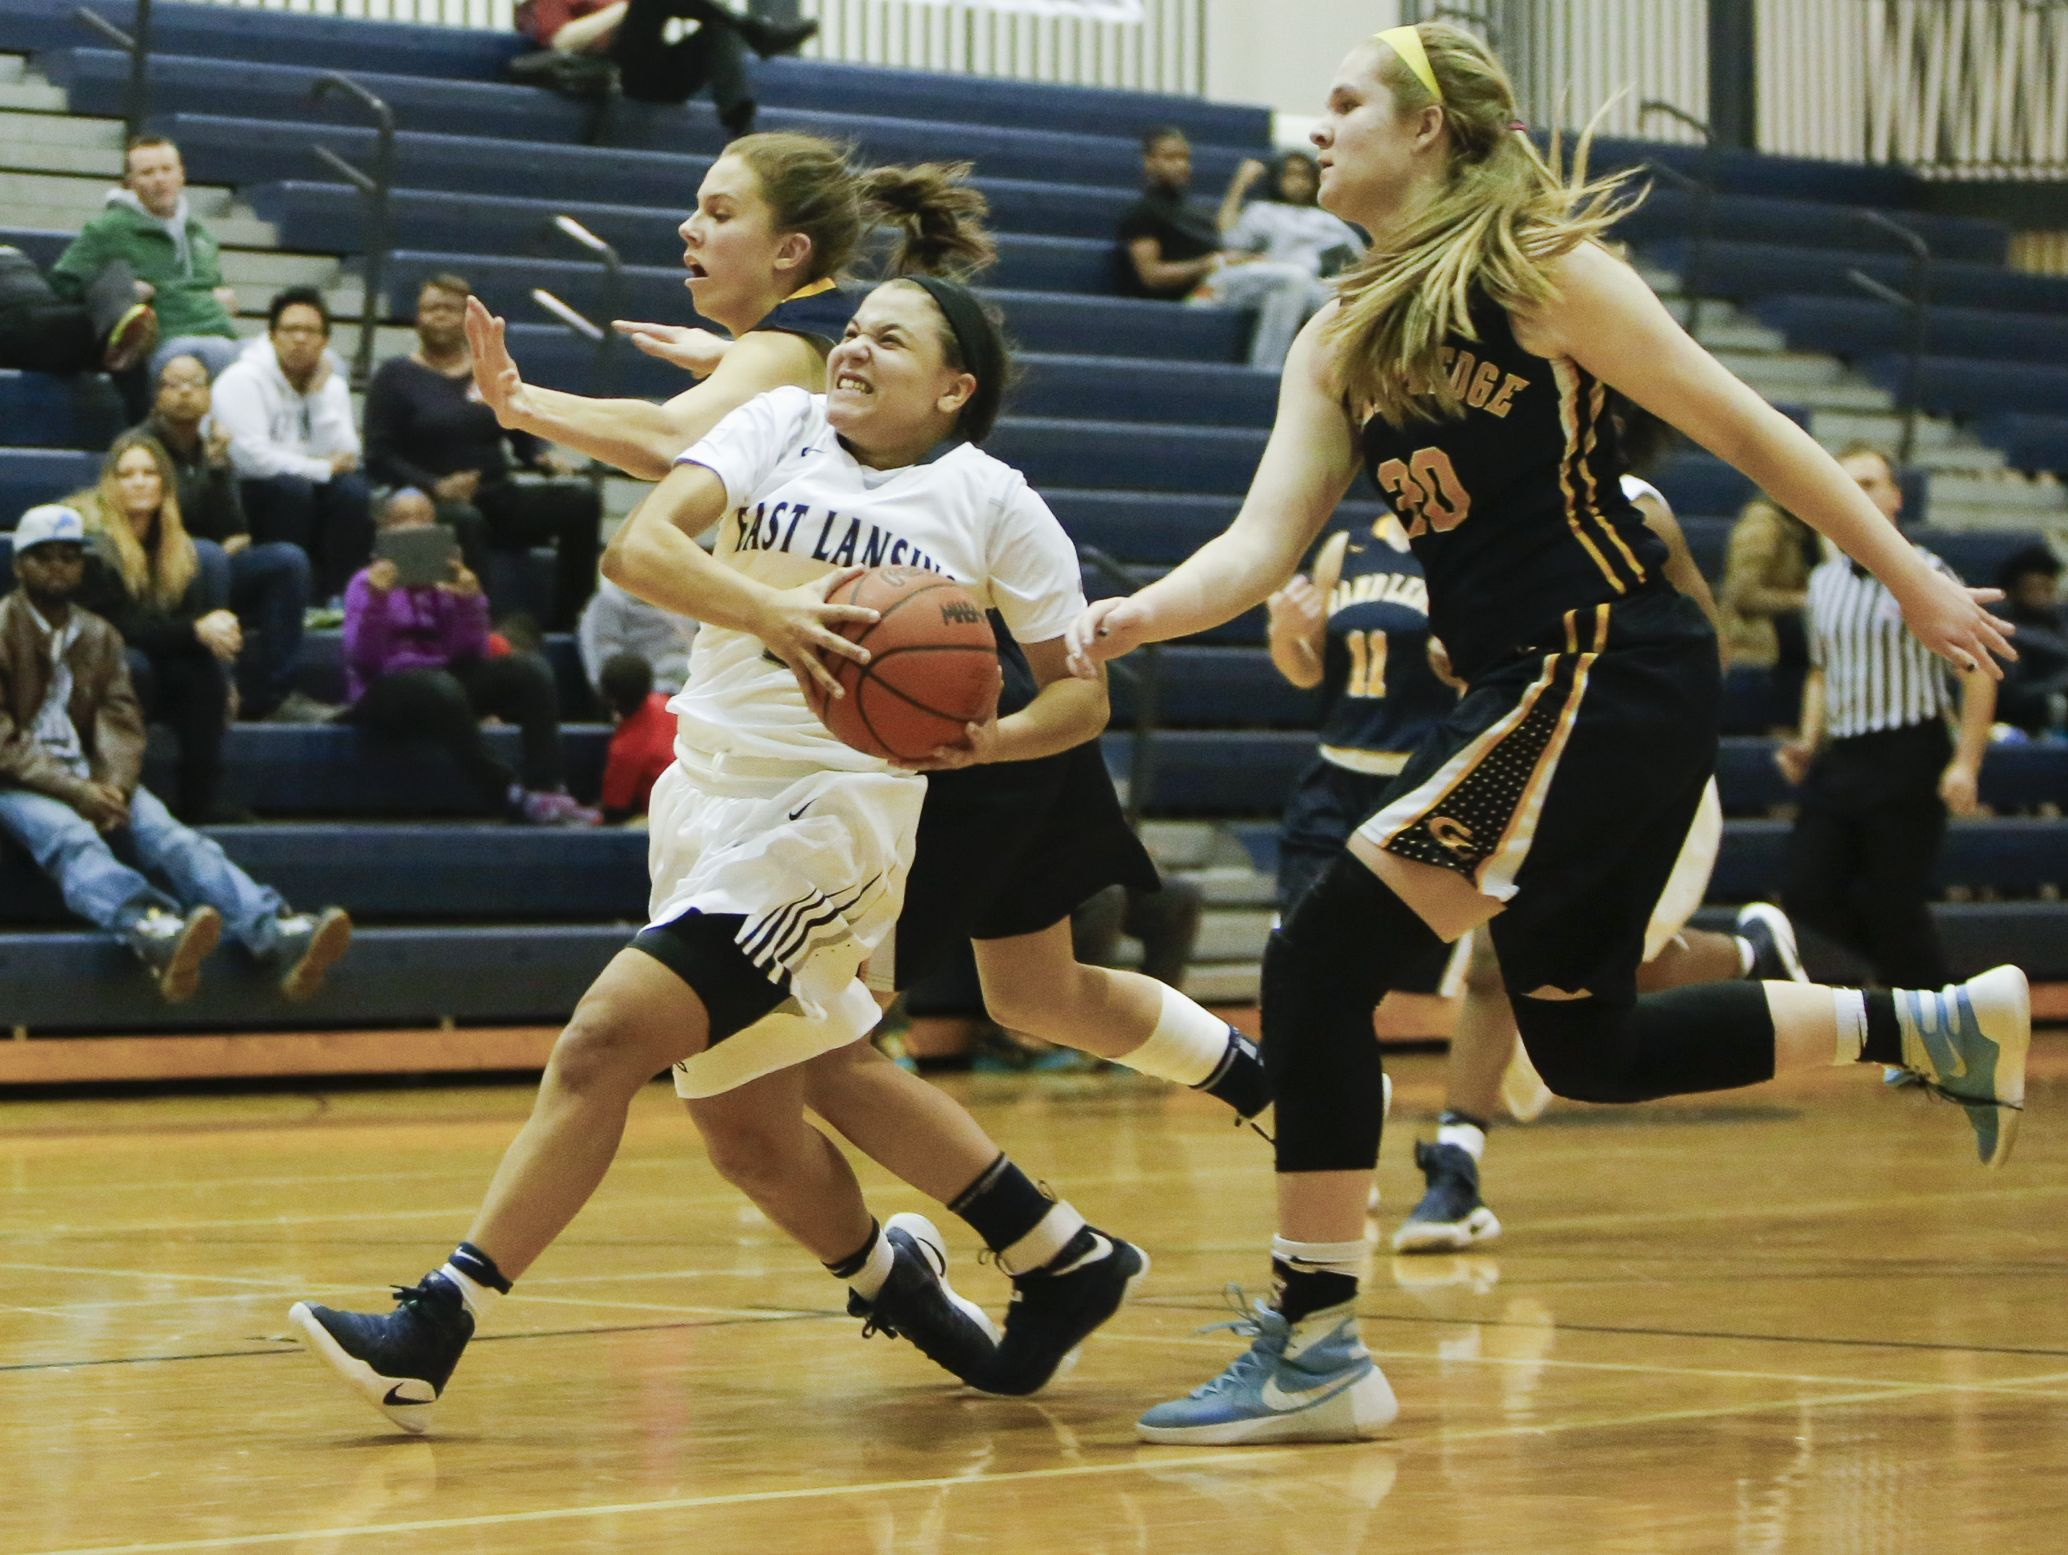 East Lansing junior Amelia McNutt drives into the paint against Grand Ledge Tuesday, Feb. 14, 2017, at East Lansing.